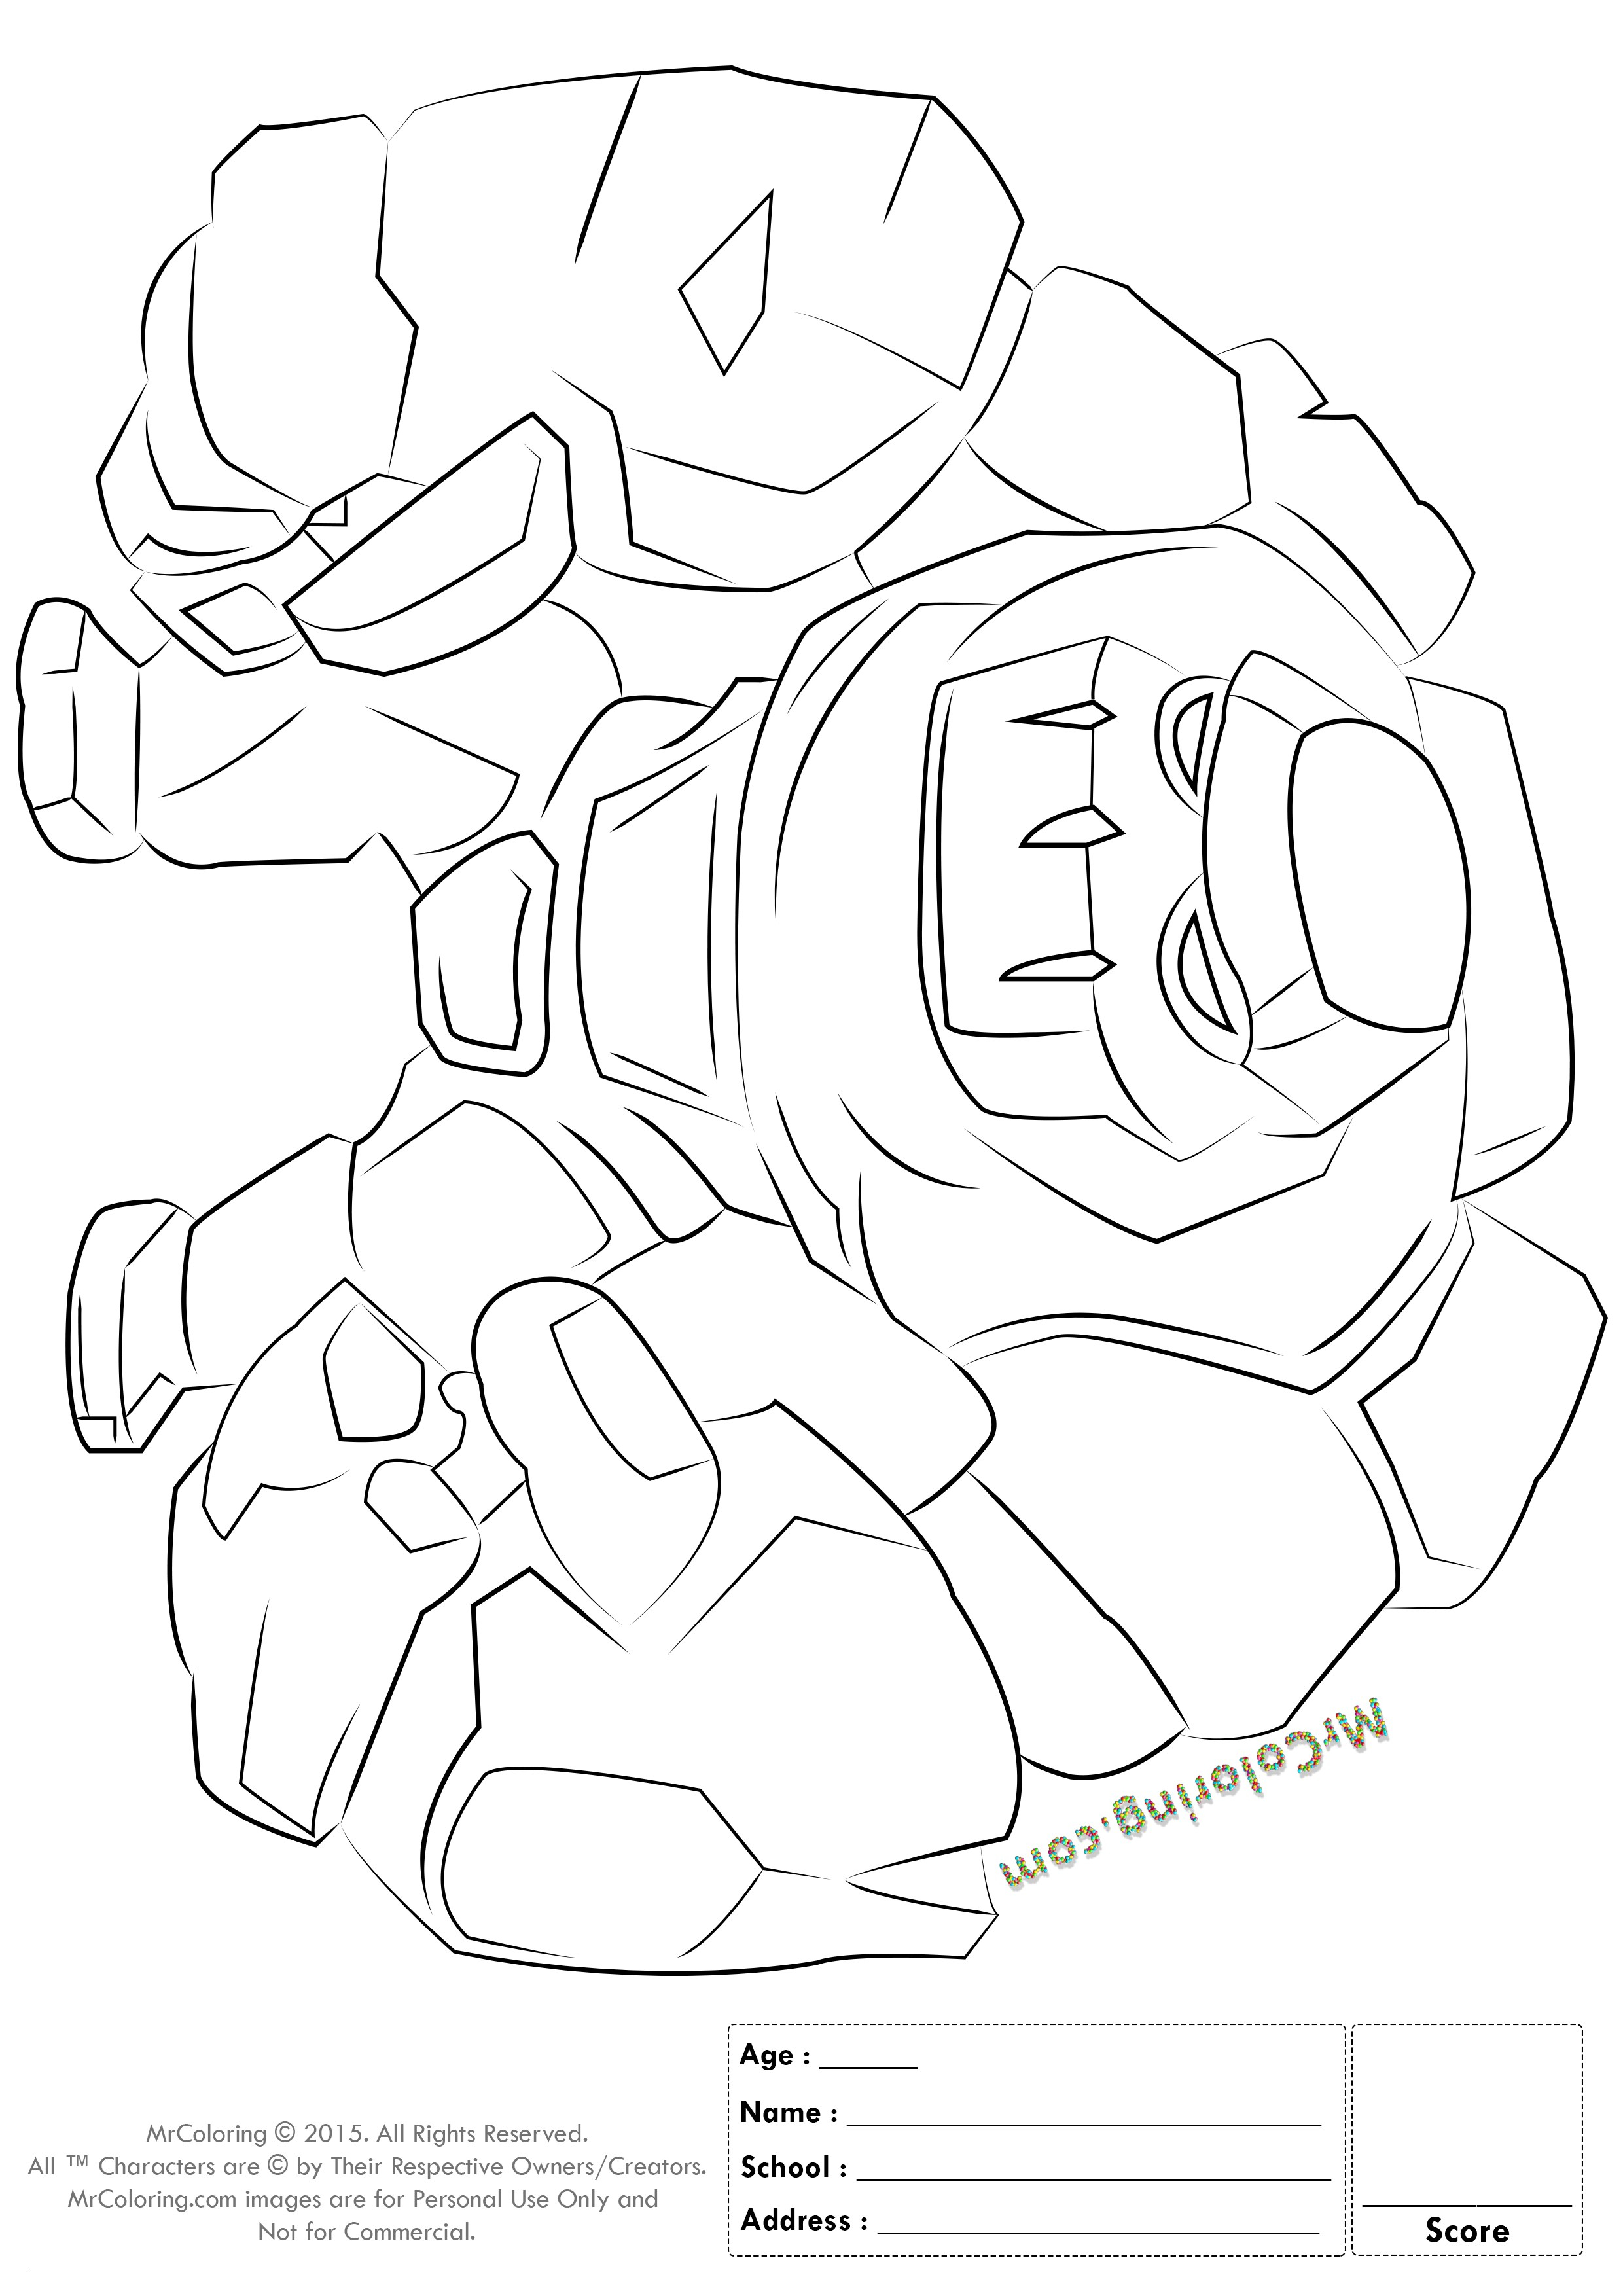 25 Free Clash Of Clans Coloring Pages Gallery Coloring Sheets